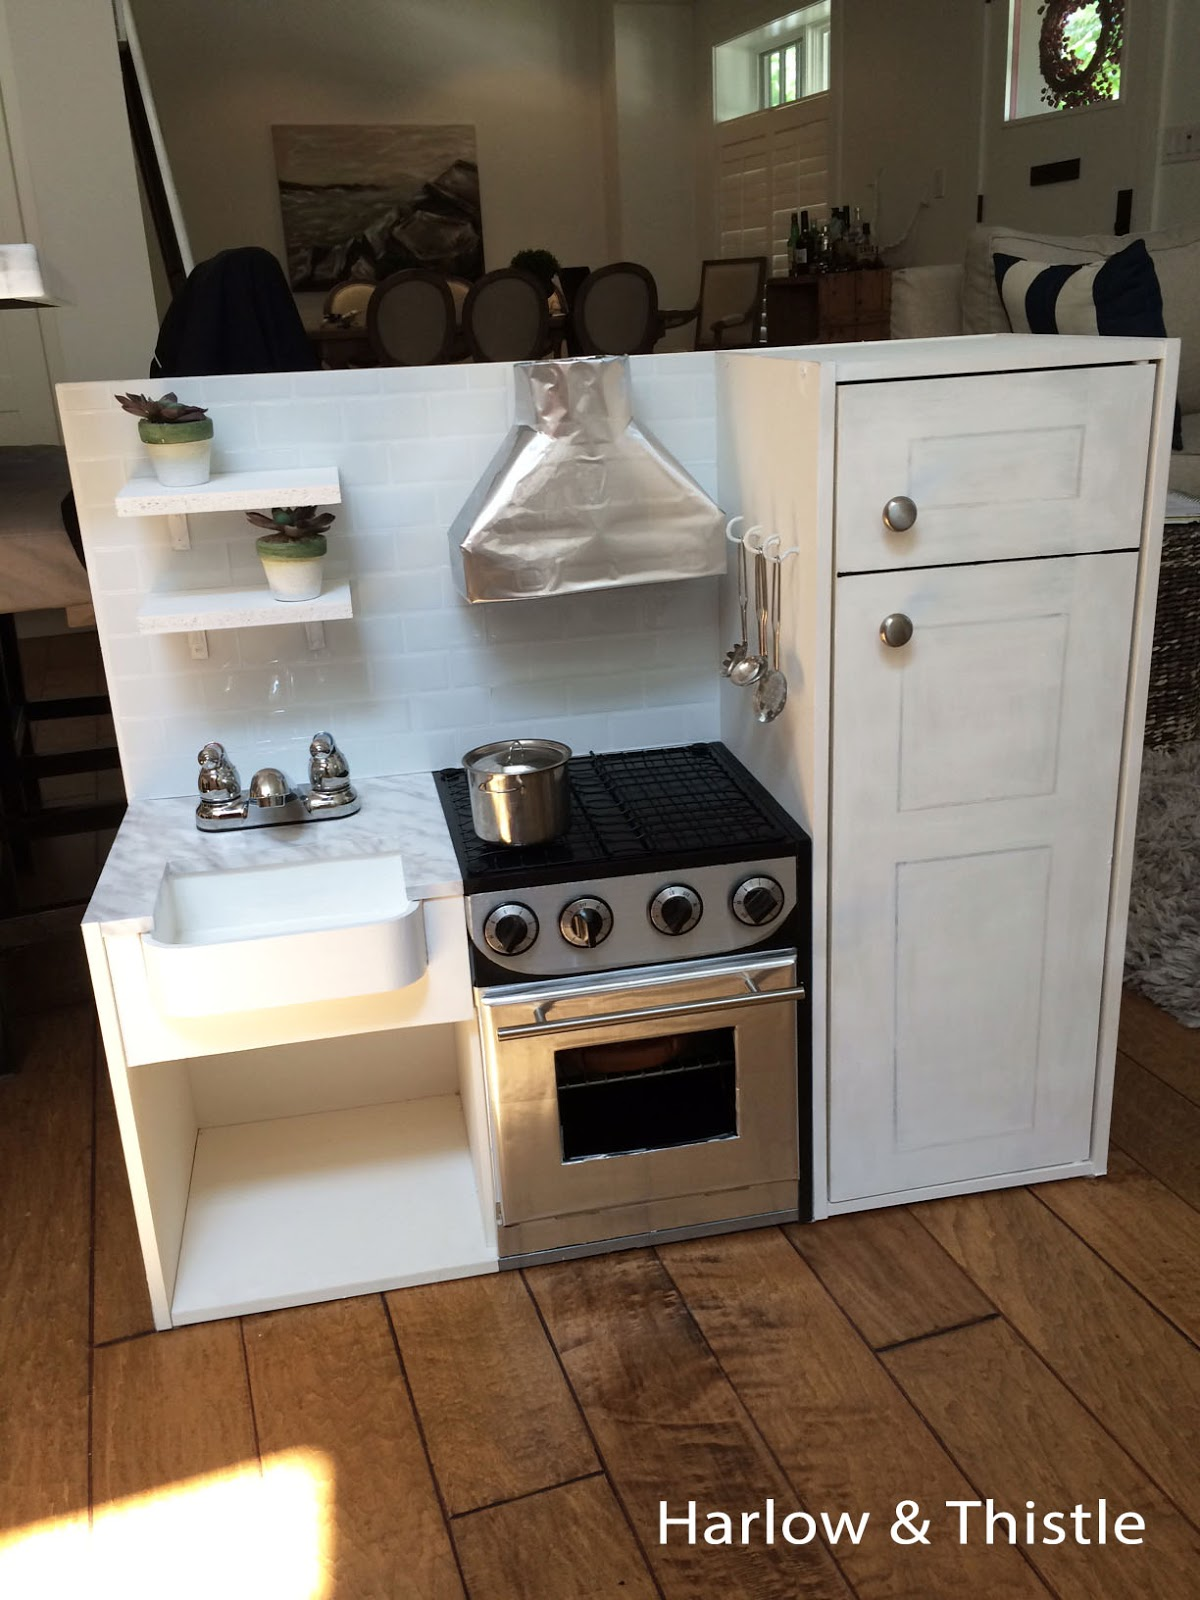 Kitchen Diy Diy Play Kitchen Harlow And Thistle Home Design